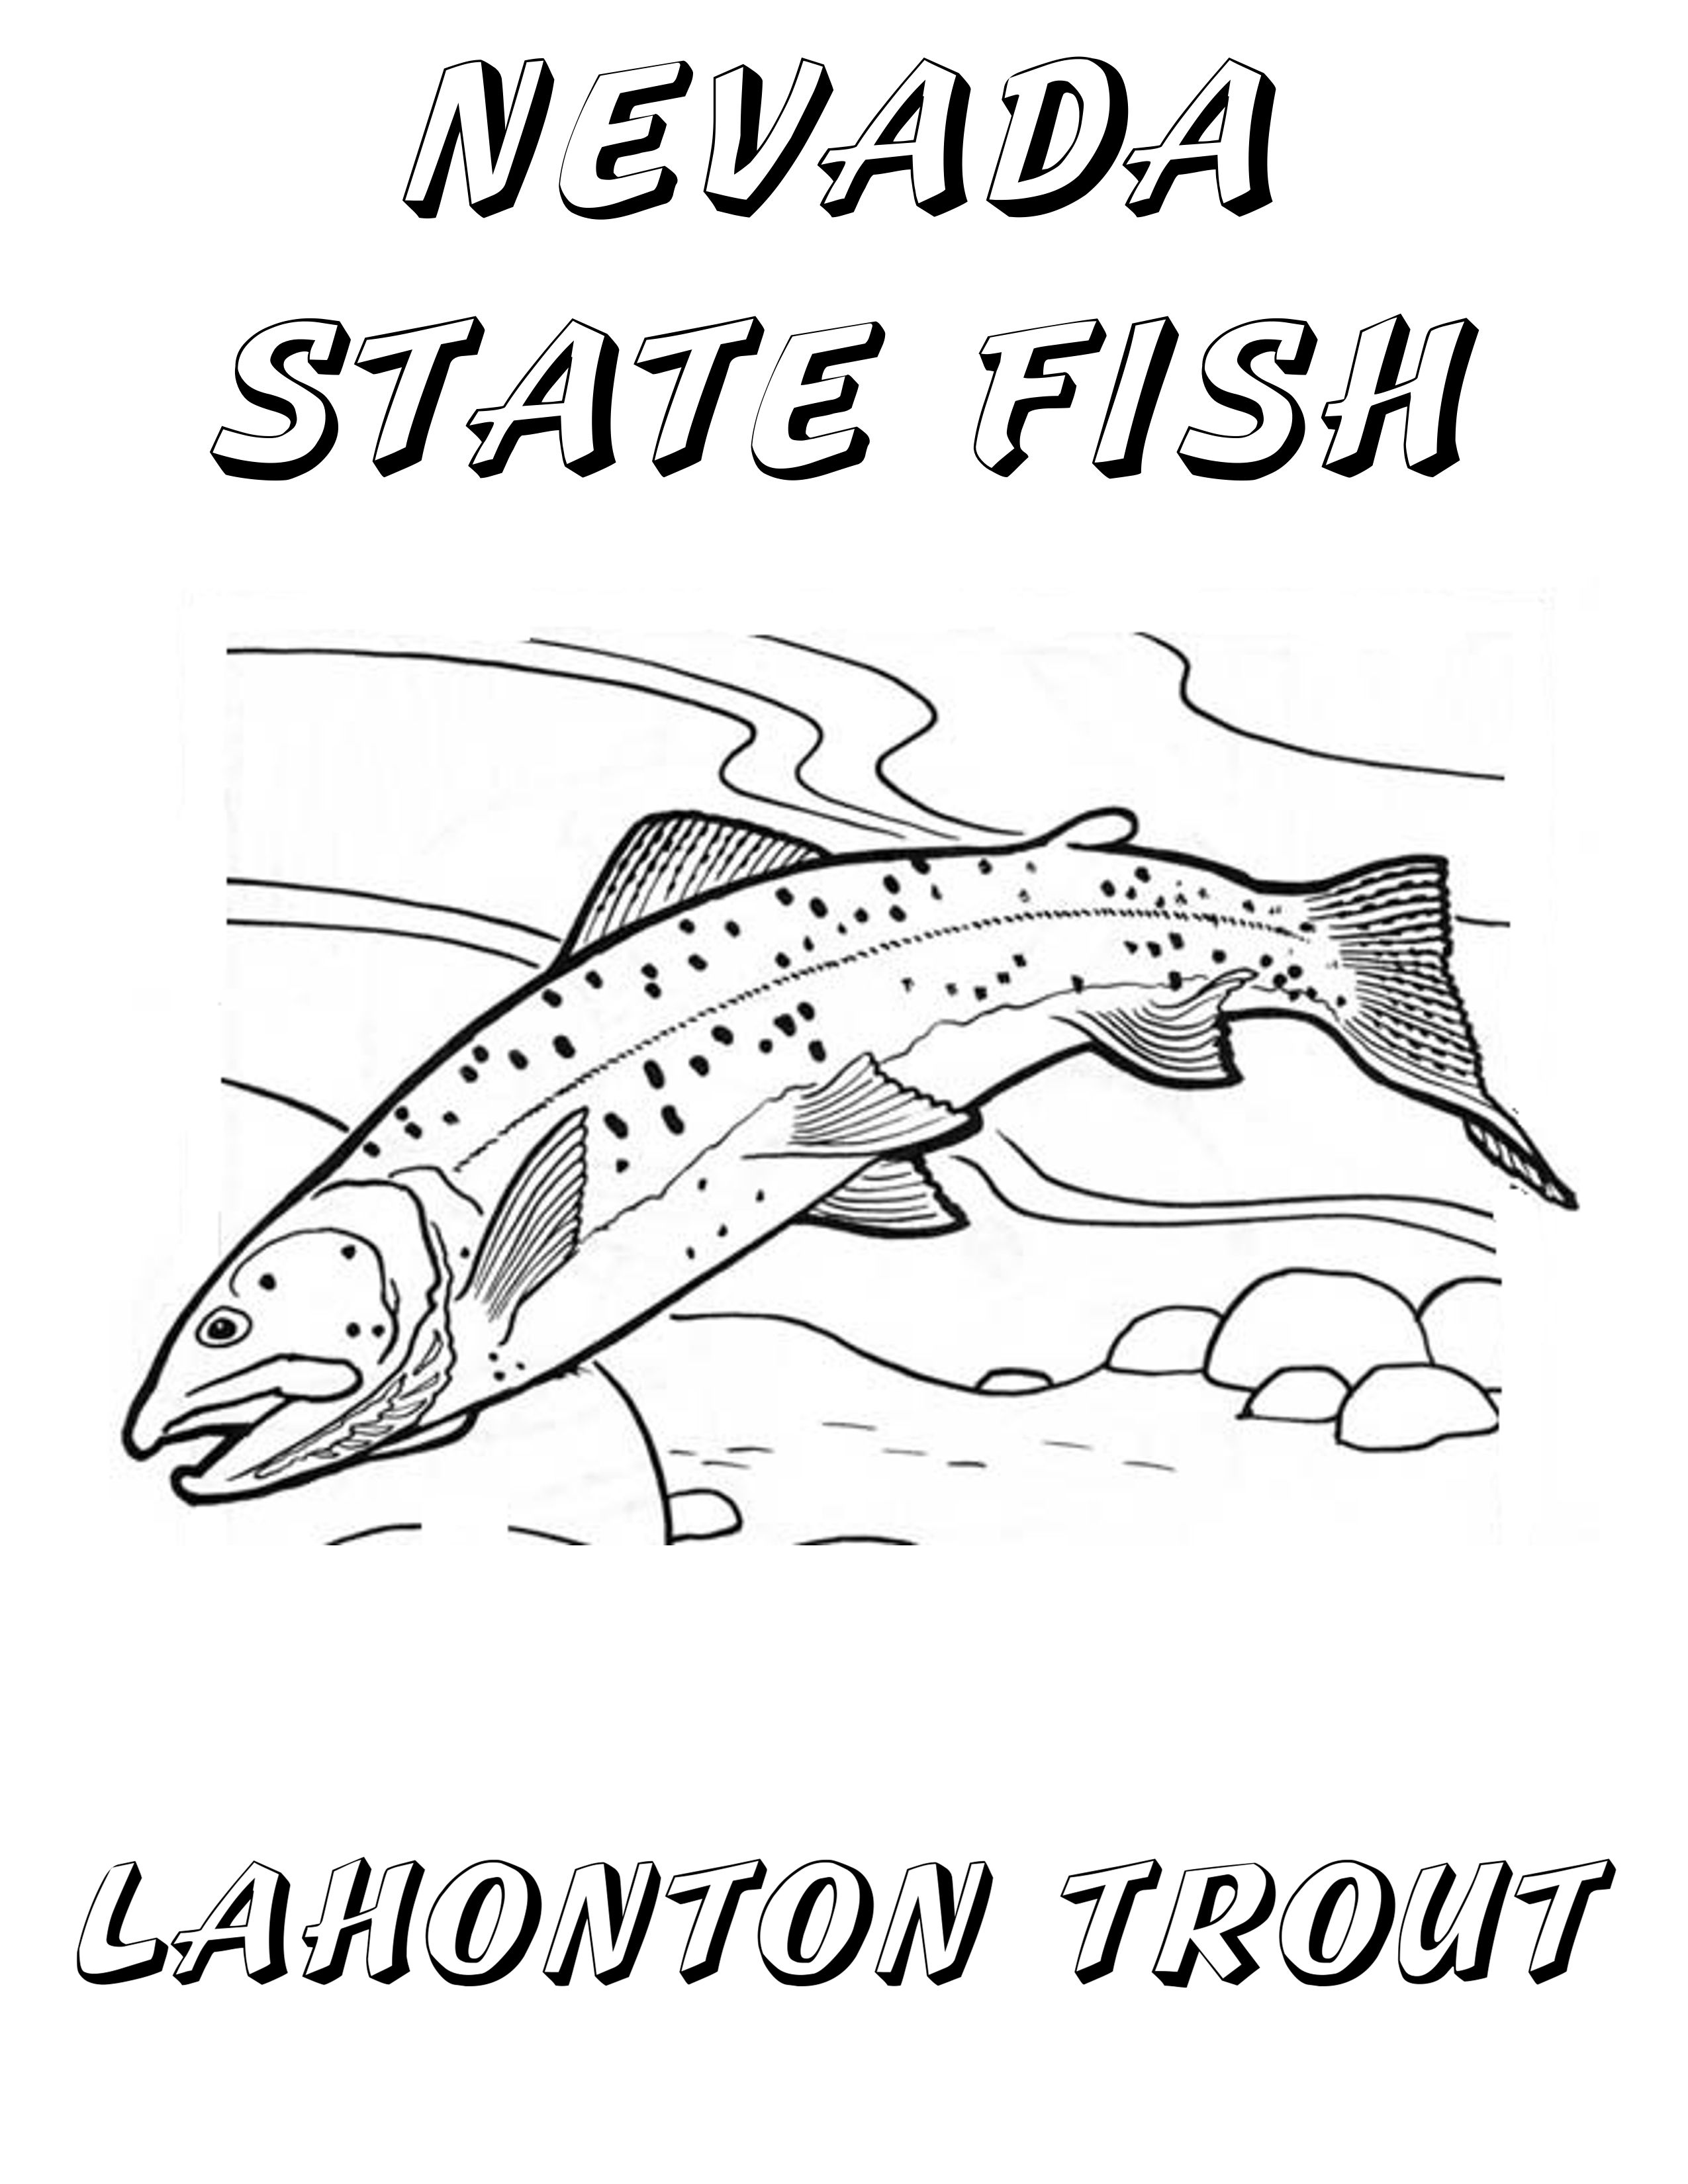 Cutthroat Trout Coloring Page Trout Art Fish Drawings